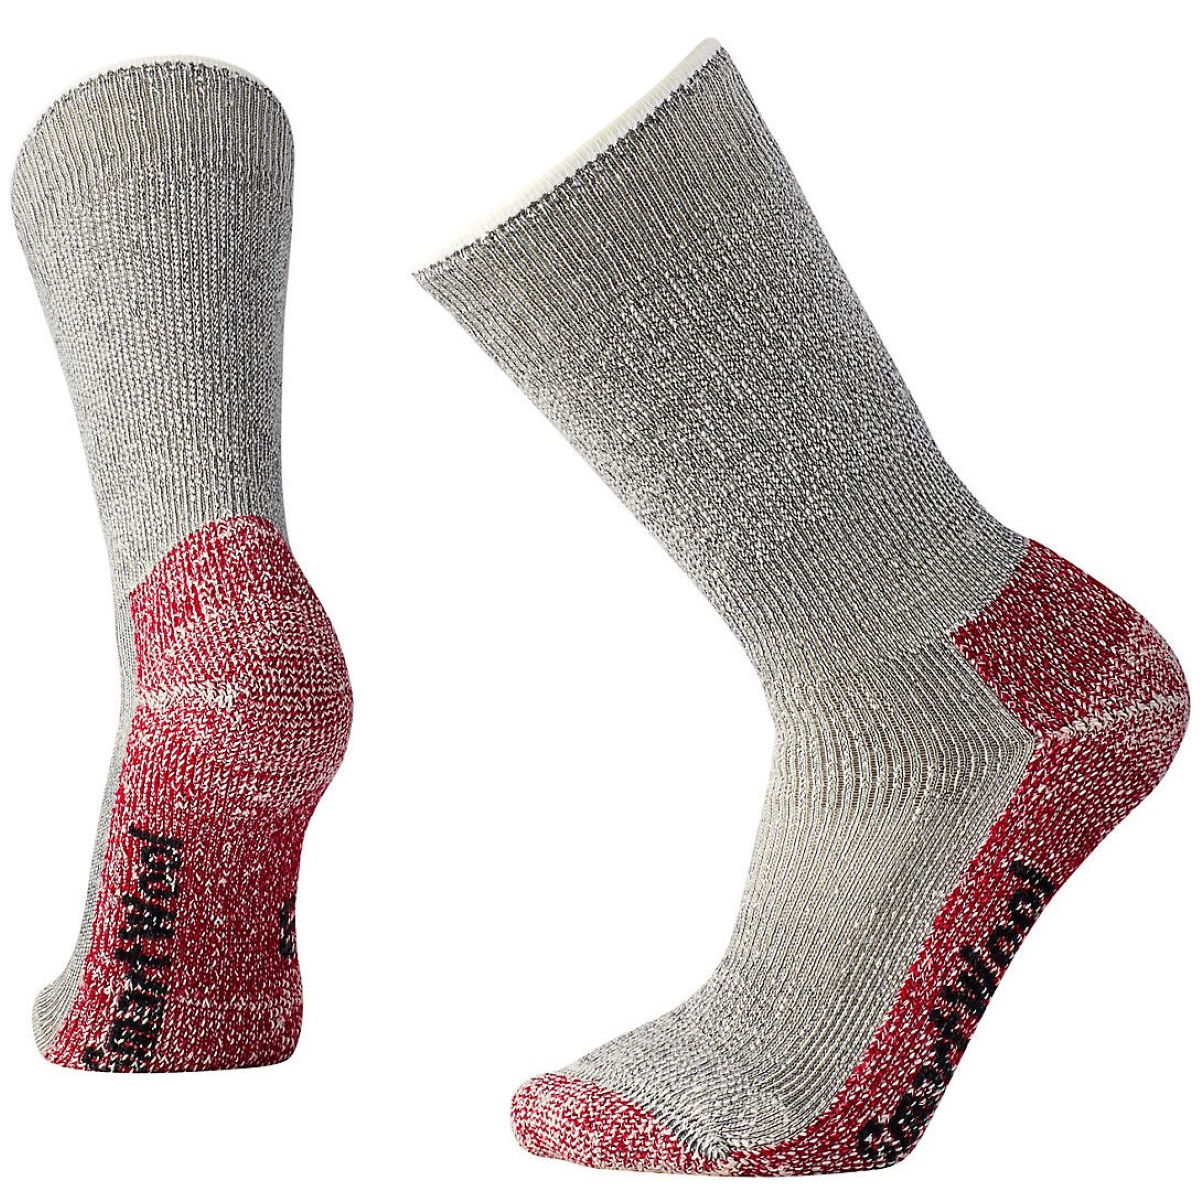 Smartwool Mountaineering Extra Heavy Socks   Socks